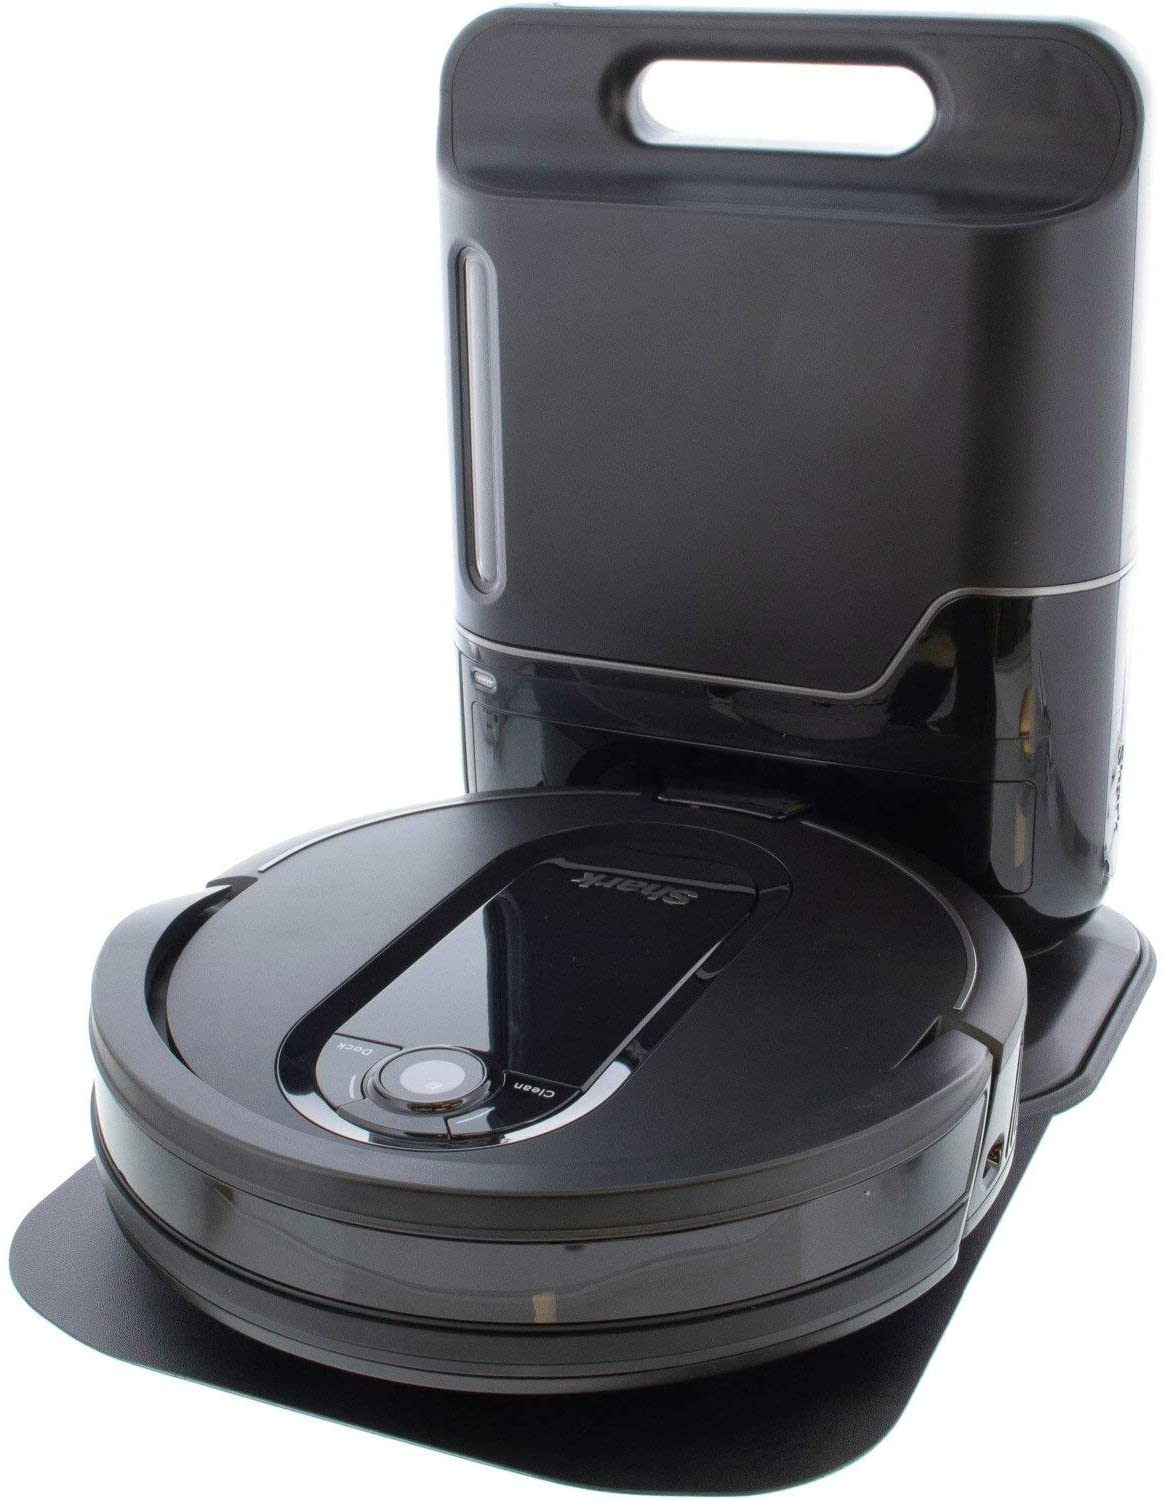 Best Shark Vacuums Tested & Reviewed 34